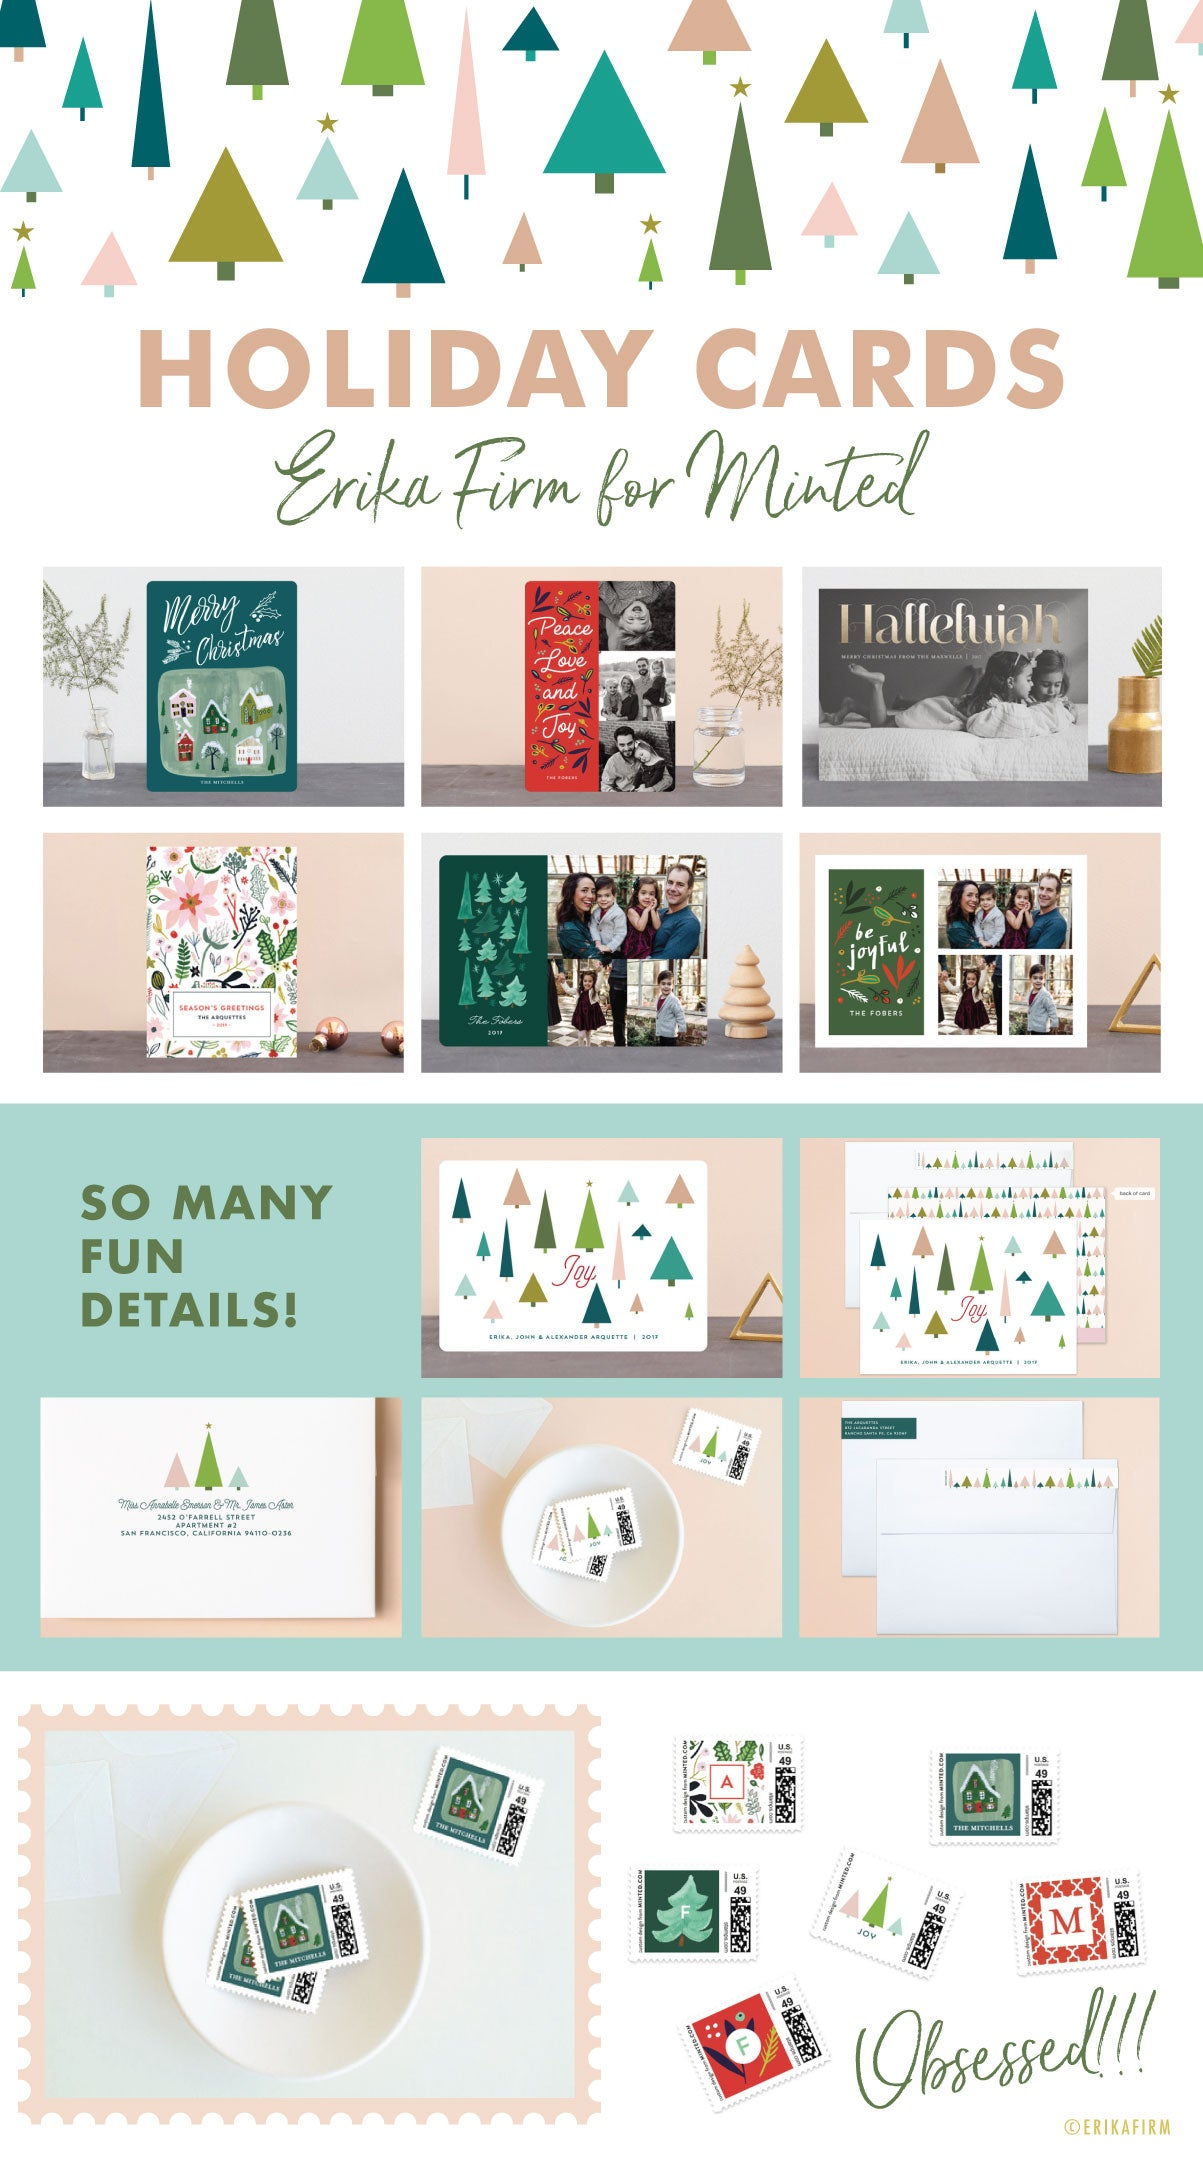 Holiday Photo Cards 2017 by Erika Firm for Minted